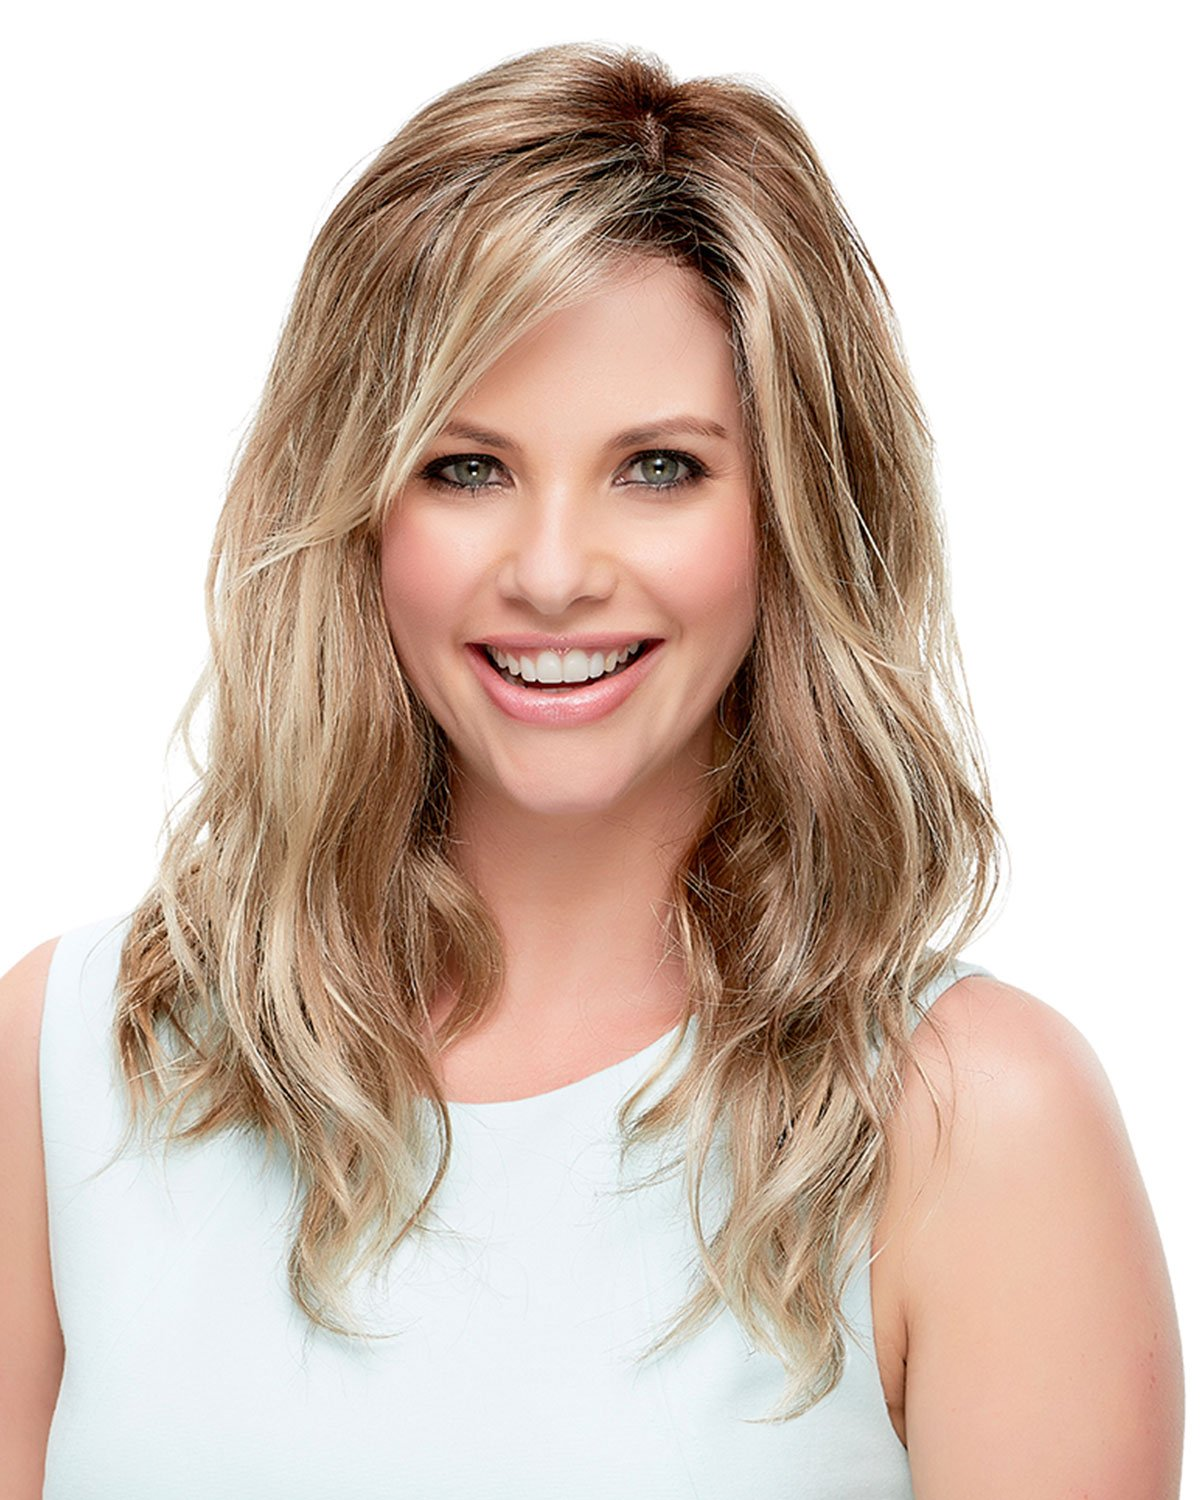 "Rachel SmartLace WigColor 12FS8 Shaded Prailine - Jon Renau Wigs 15"" Long Soft Wavy Layers Women's Lace Front Synthetic Monofilament Top Hand-Tied Natural Looking Hairline"